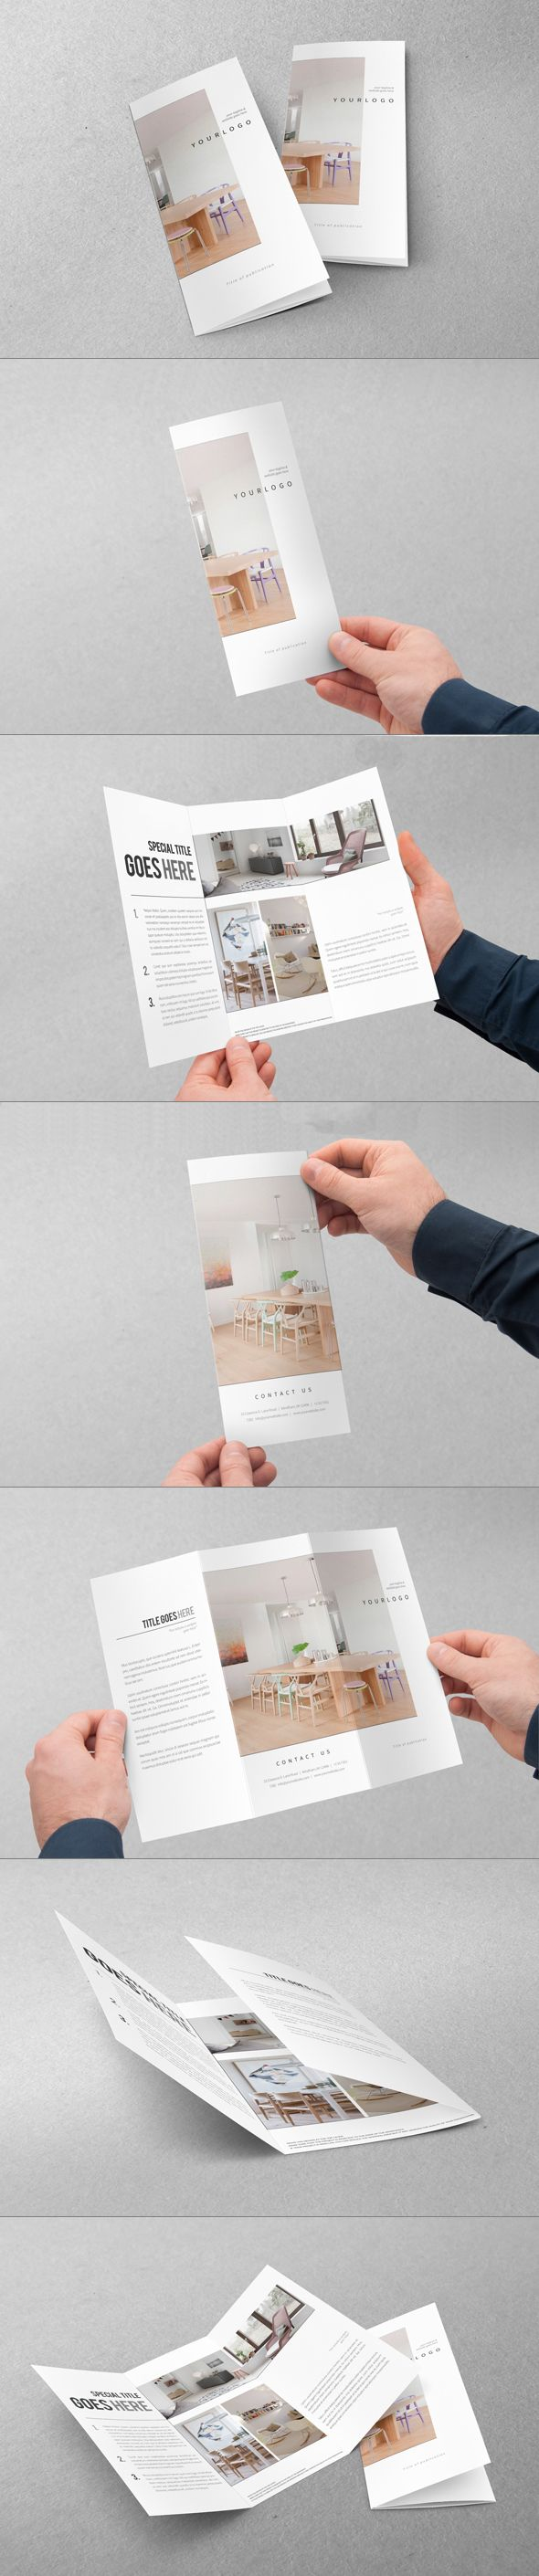 Minimal Interior Design Trifold on Behance More